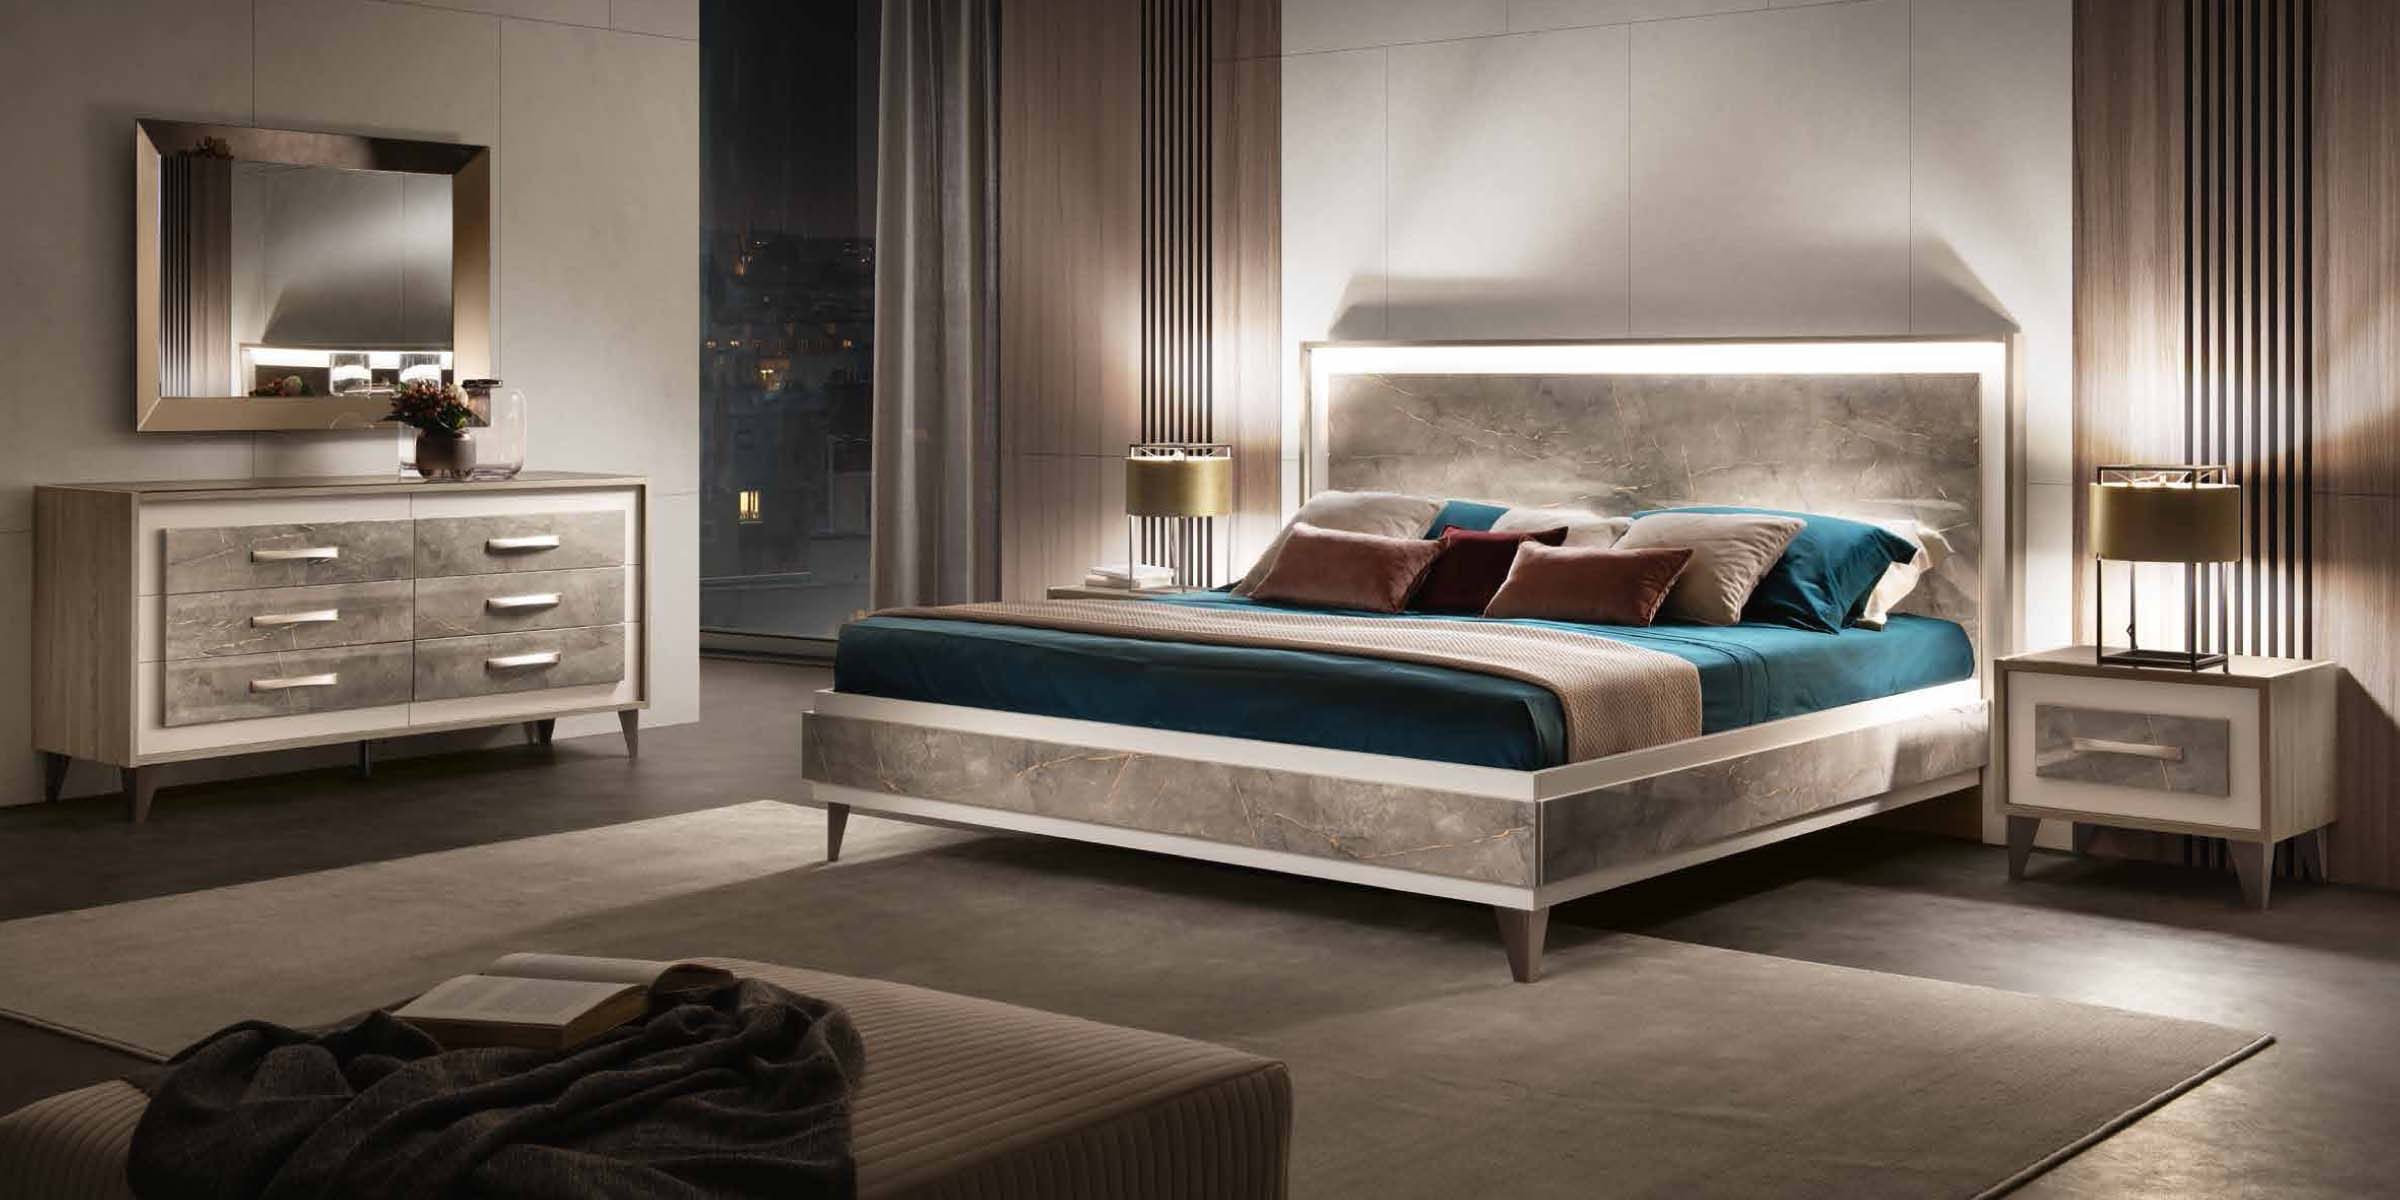 Brands Arredoclassic Bedroom, Italy ArredoAmbra Bedroom by Arredoclassic